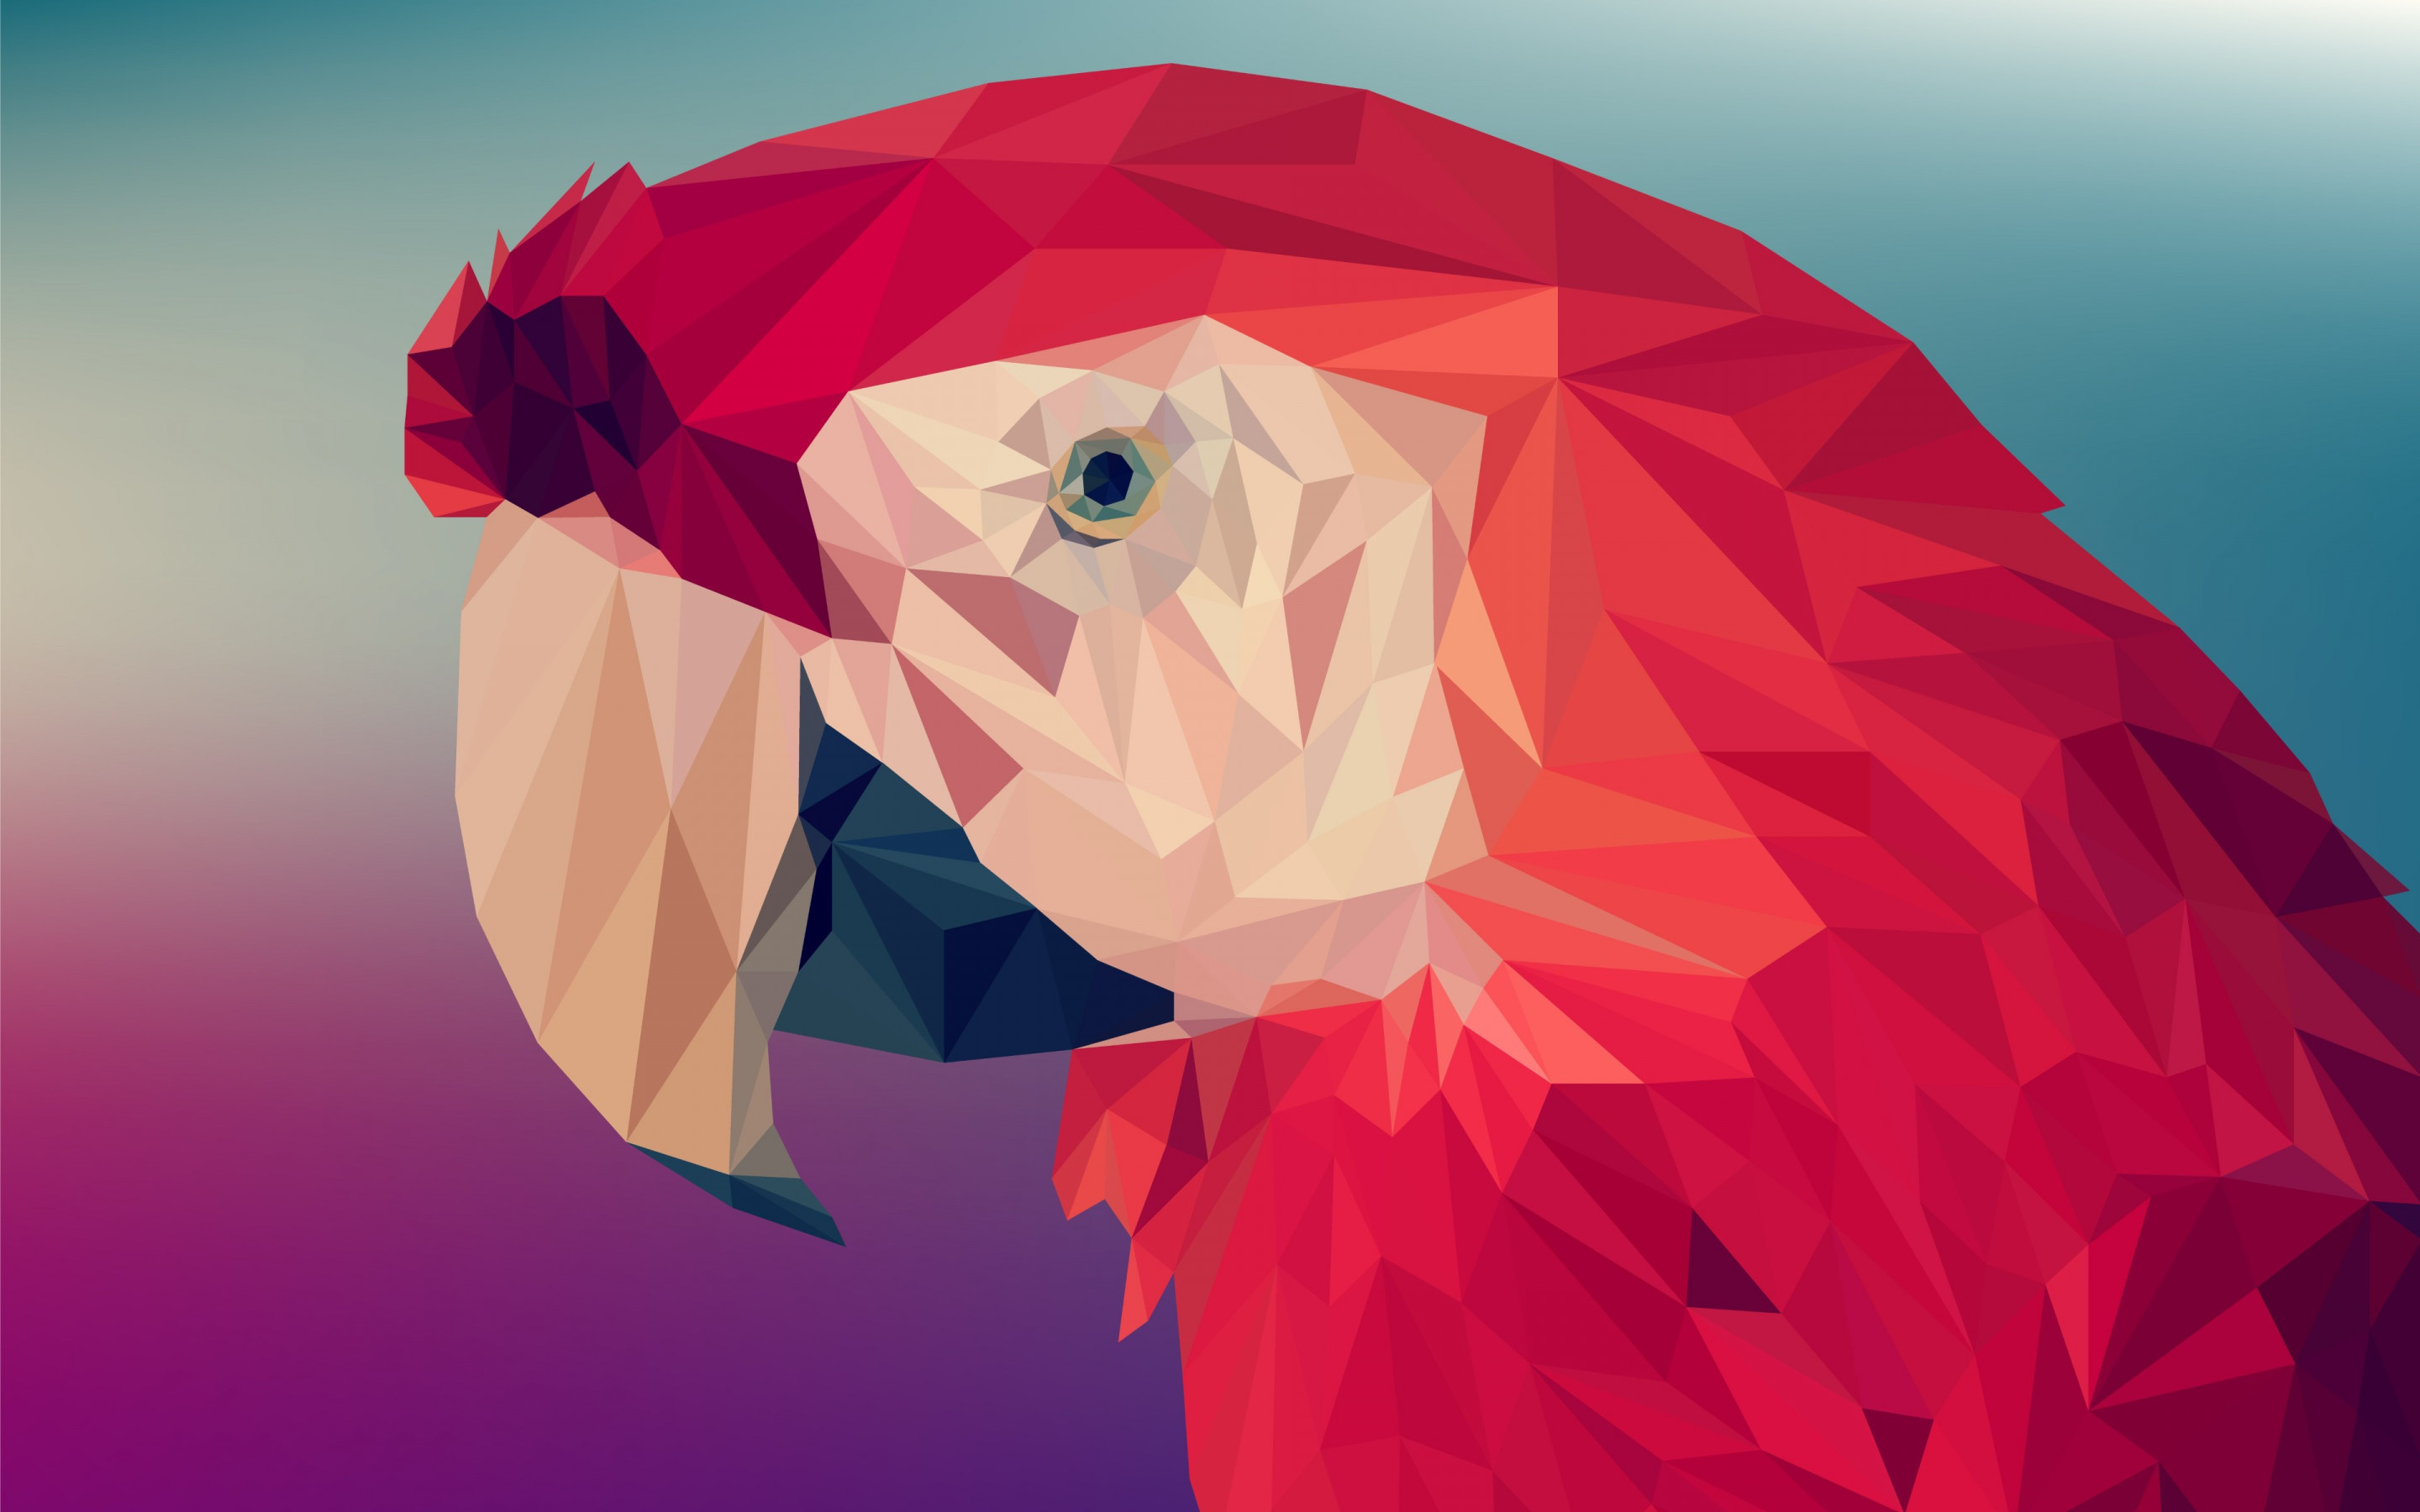 Low poly art: Red parrot wallpaper 2880x1800